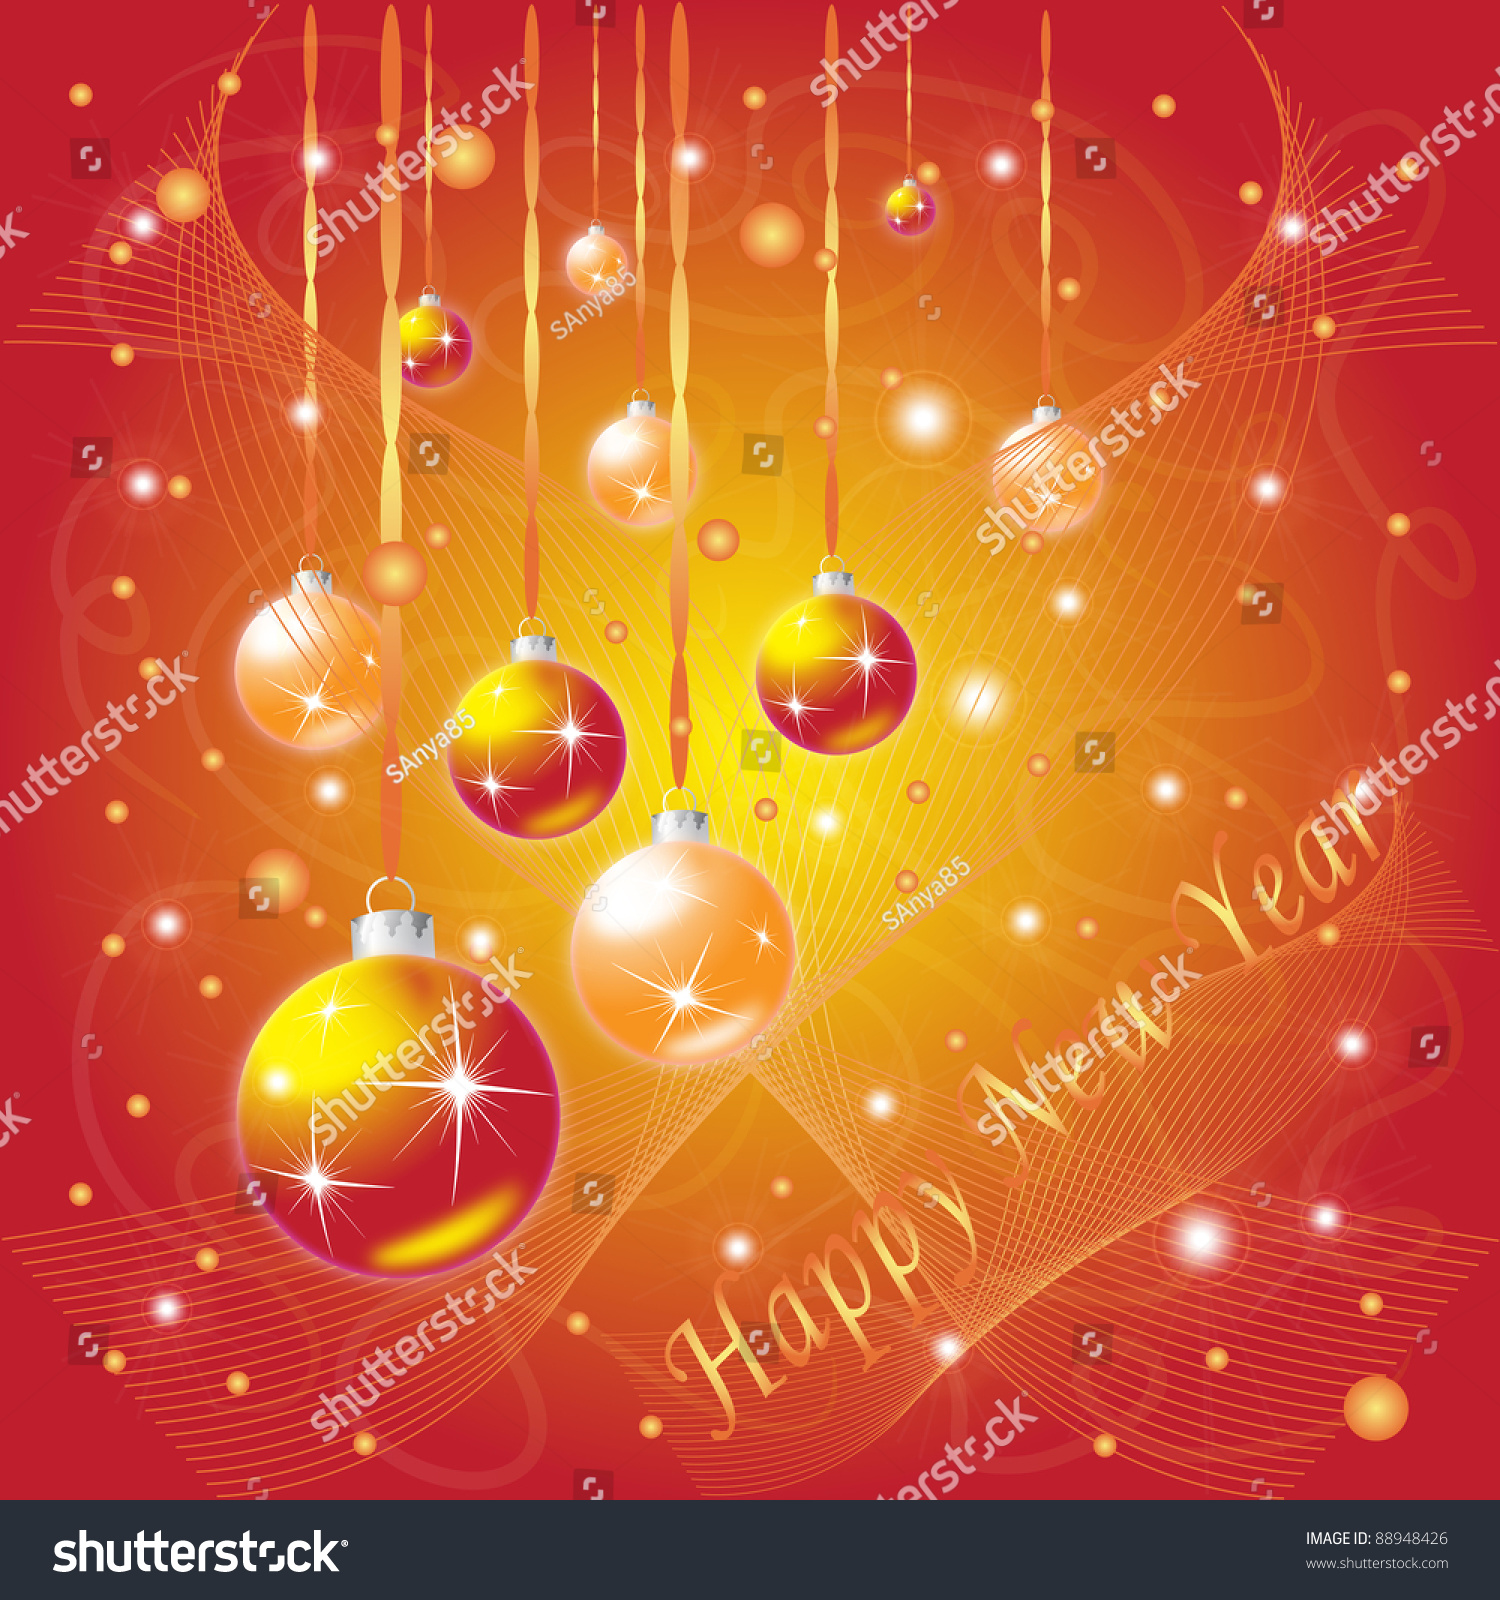 New Year Greeting Card Stock Photo Royalty Free 88948426